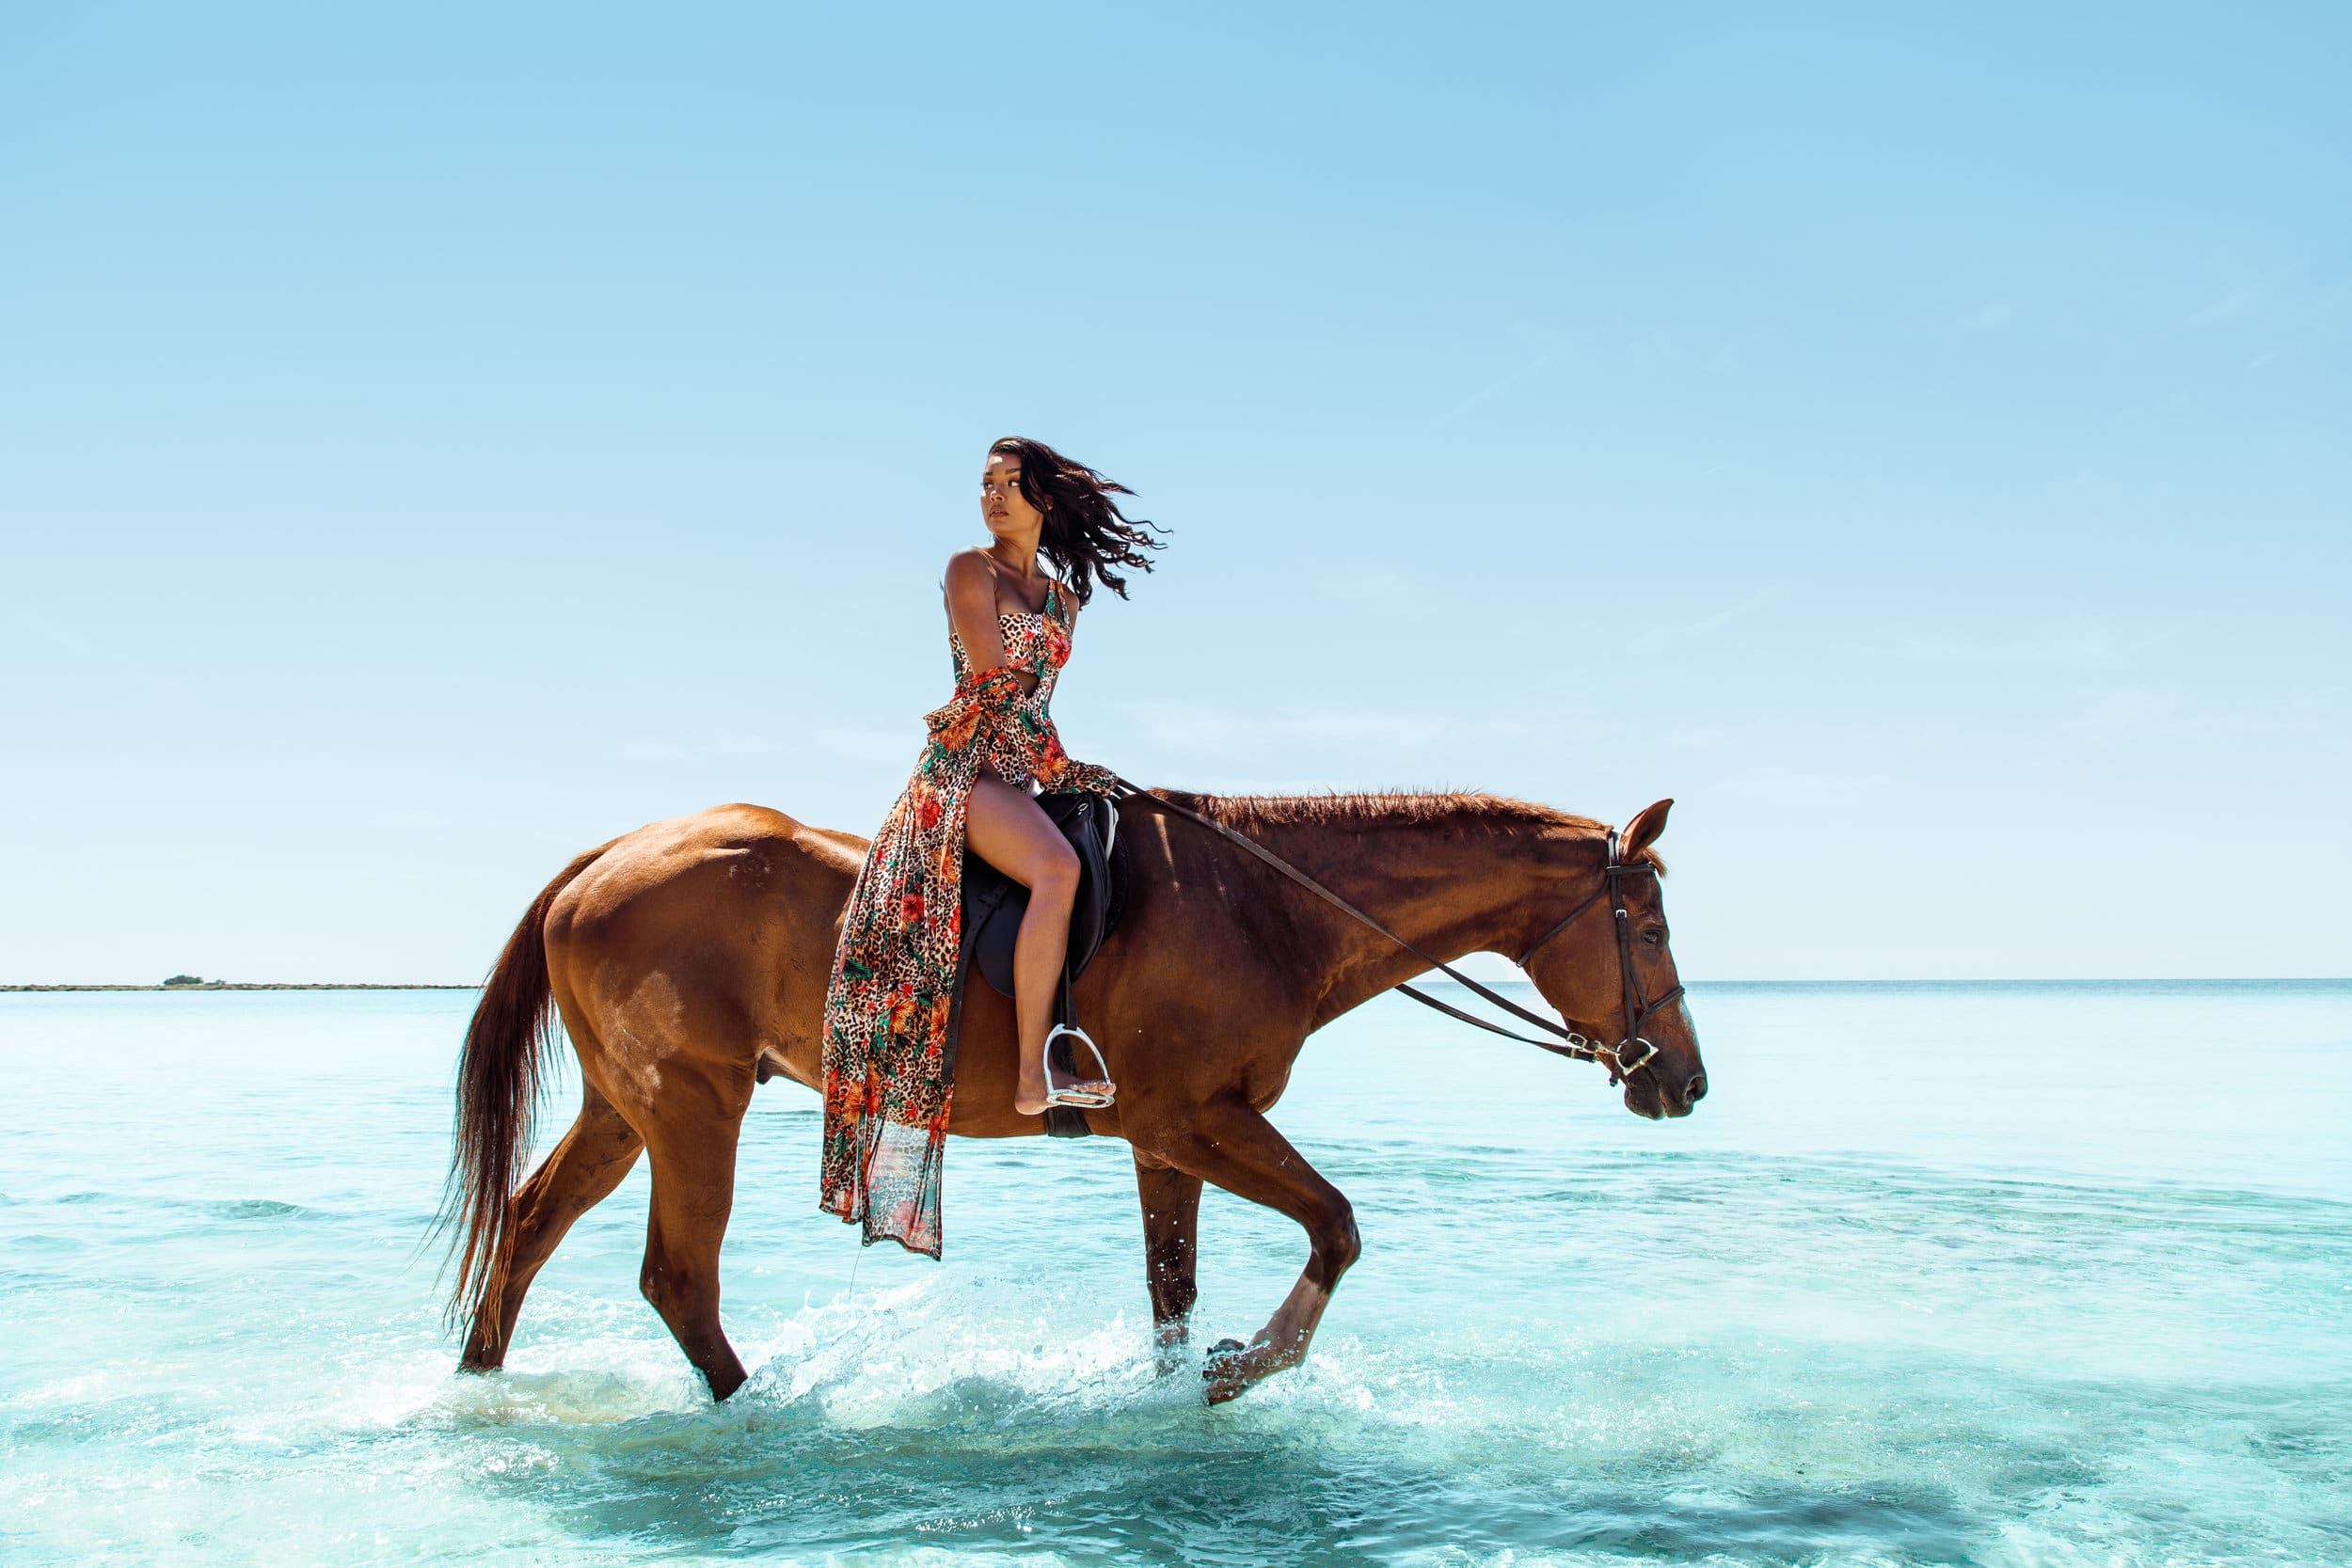 woman riding on a horse in the sea